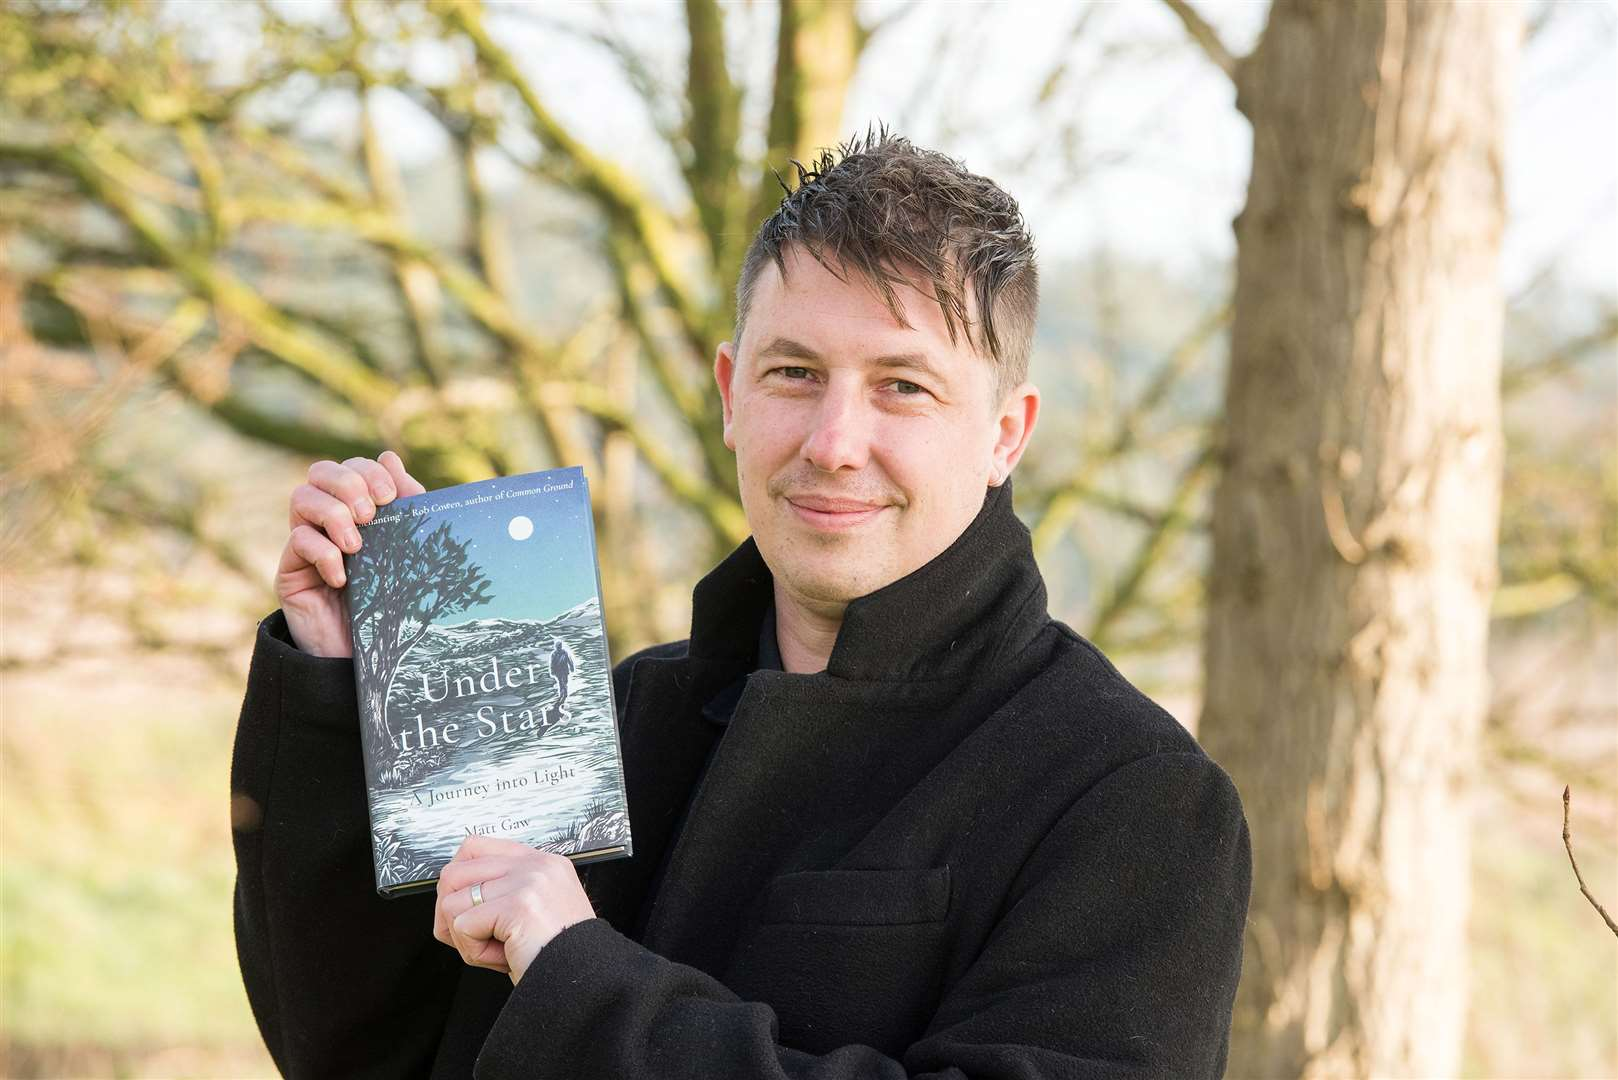 Matt Gaw has published a new book - Under the Stars. Picture by Mark Westley.